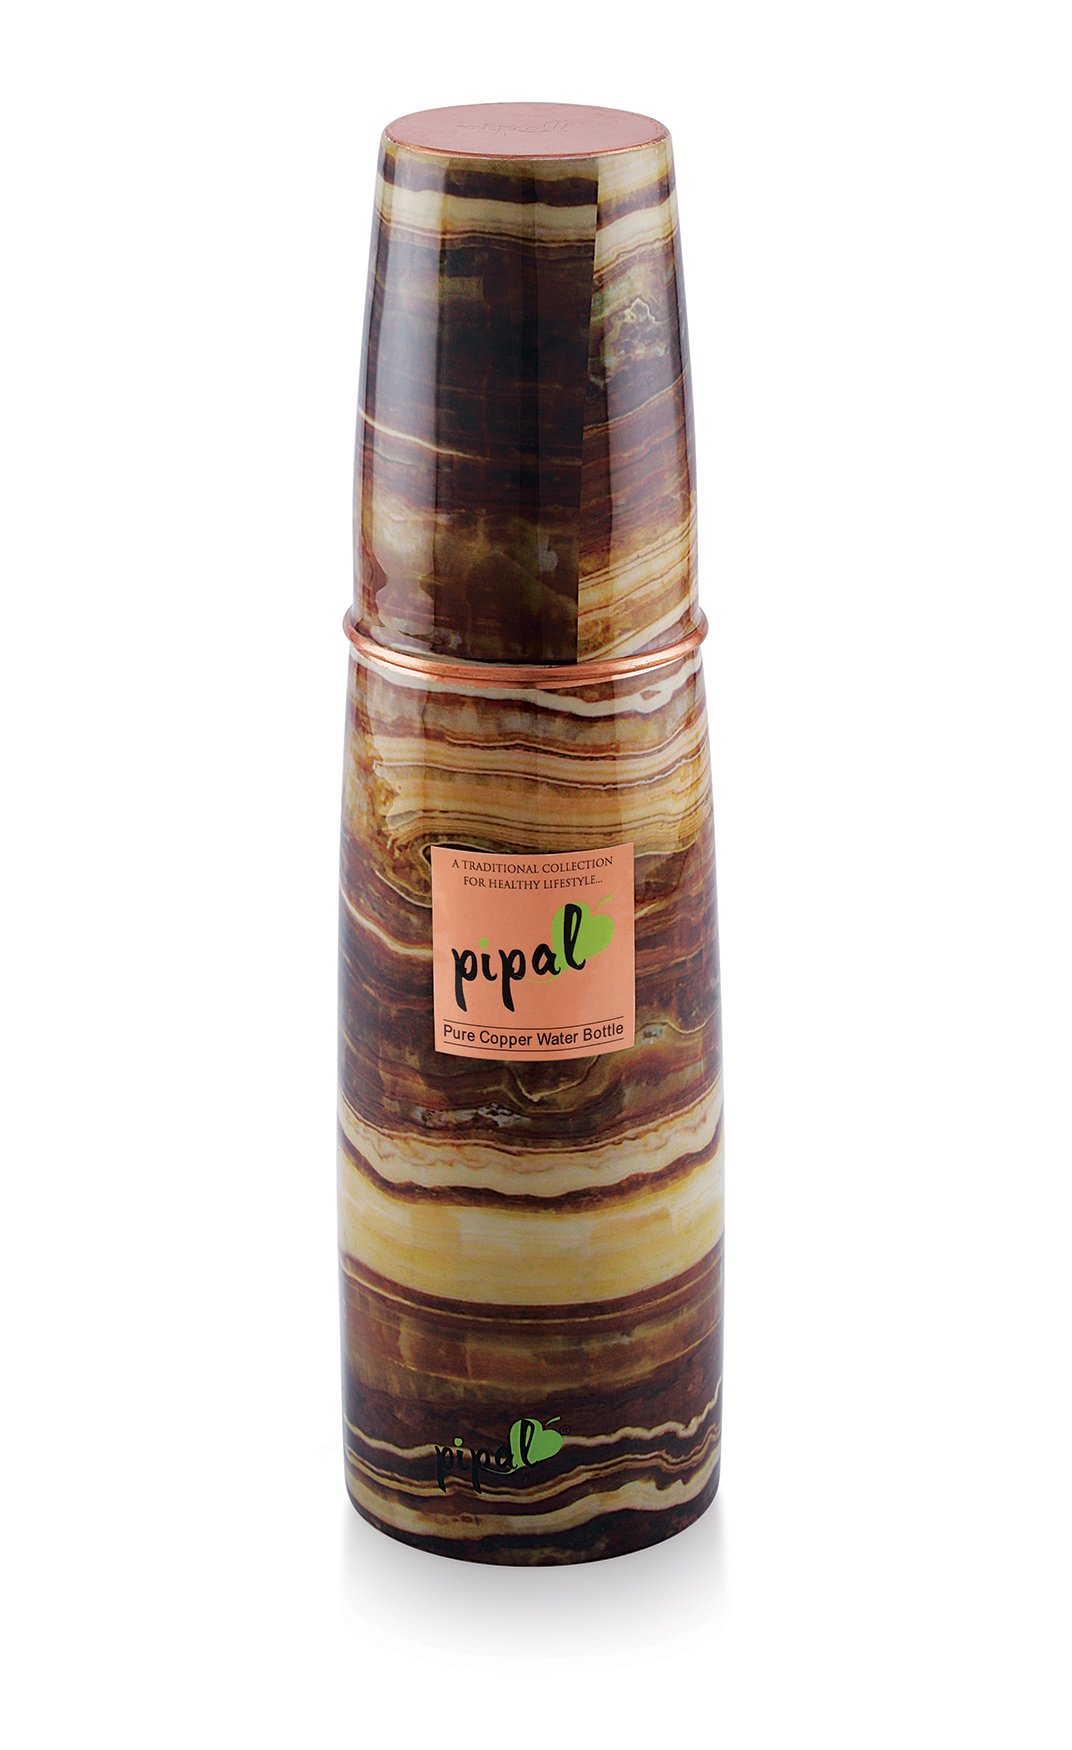 Pipal O2 Pure Copper Water Bottle, Leak Proof and Joint-less, Perfect for Sports, Fitness, Yoga with Ayurvedic Health Benefits (Wood)